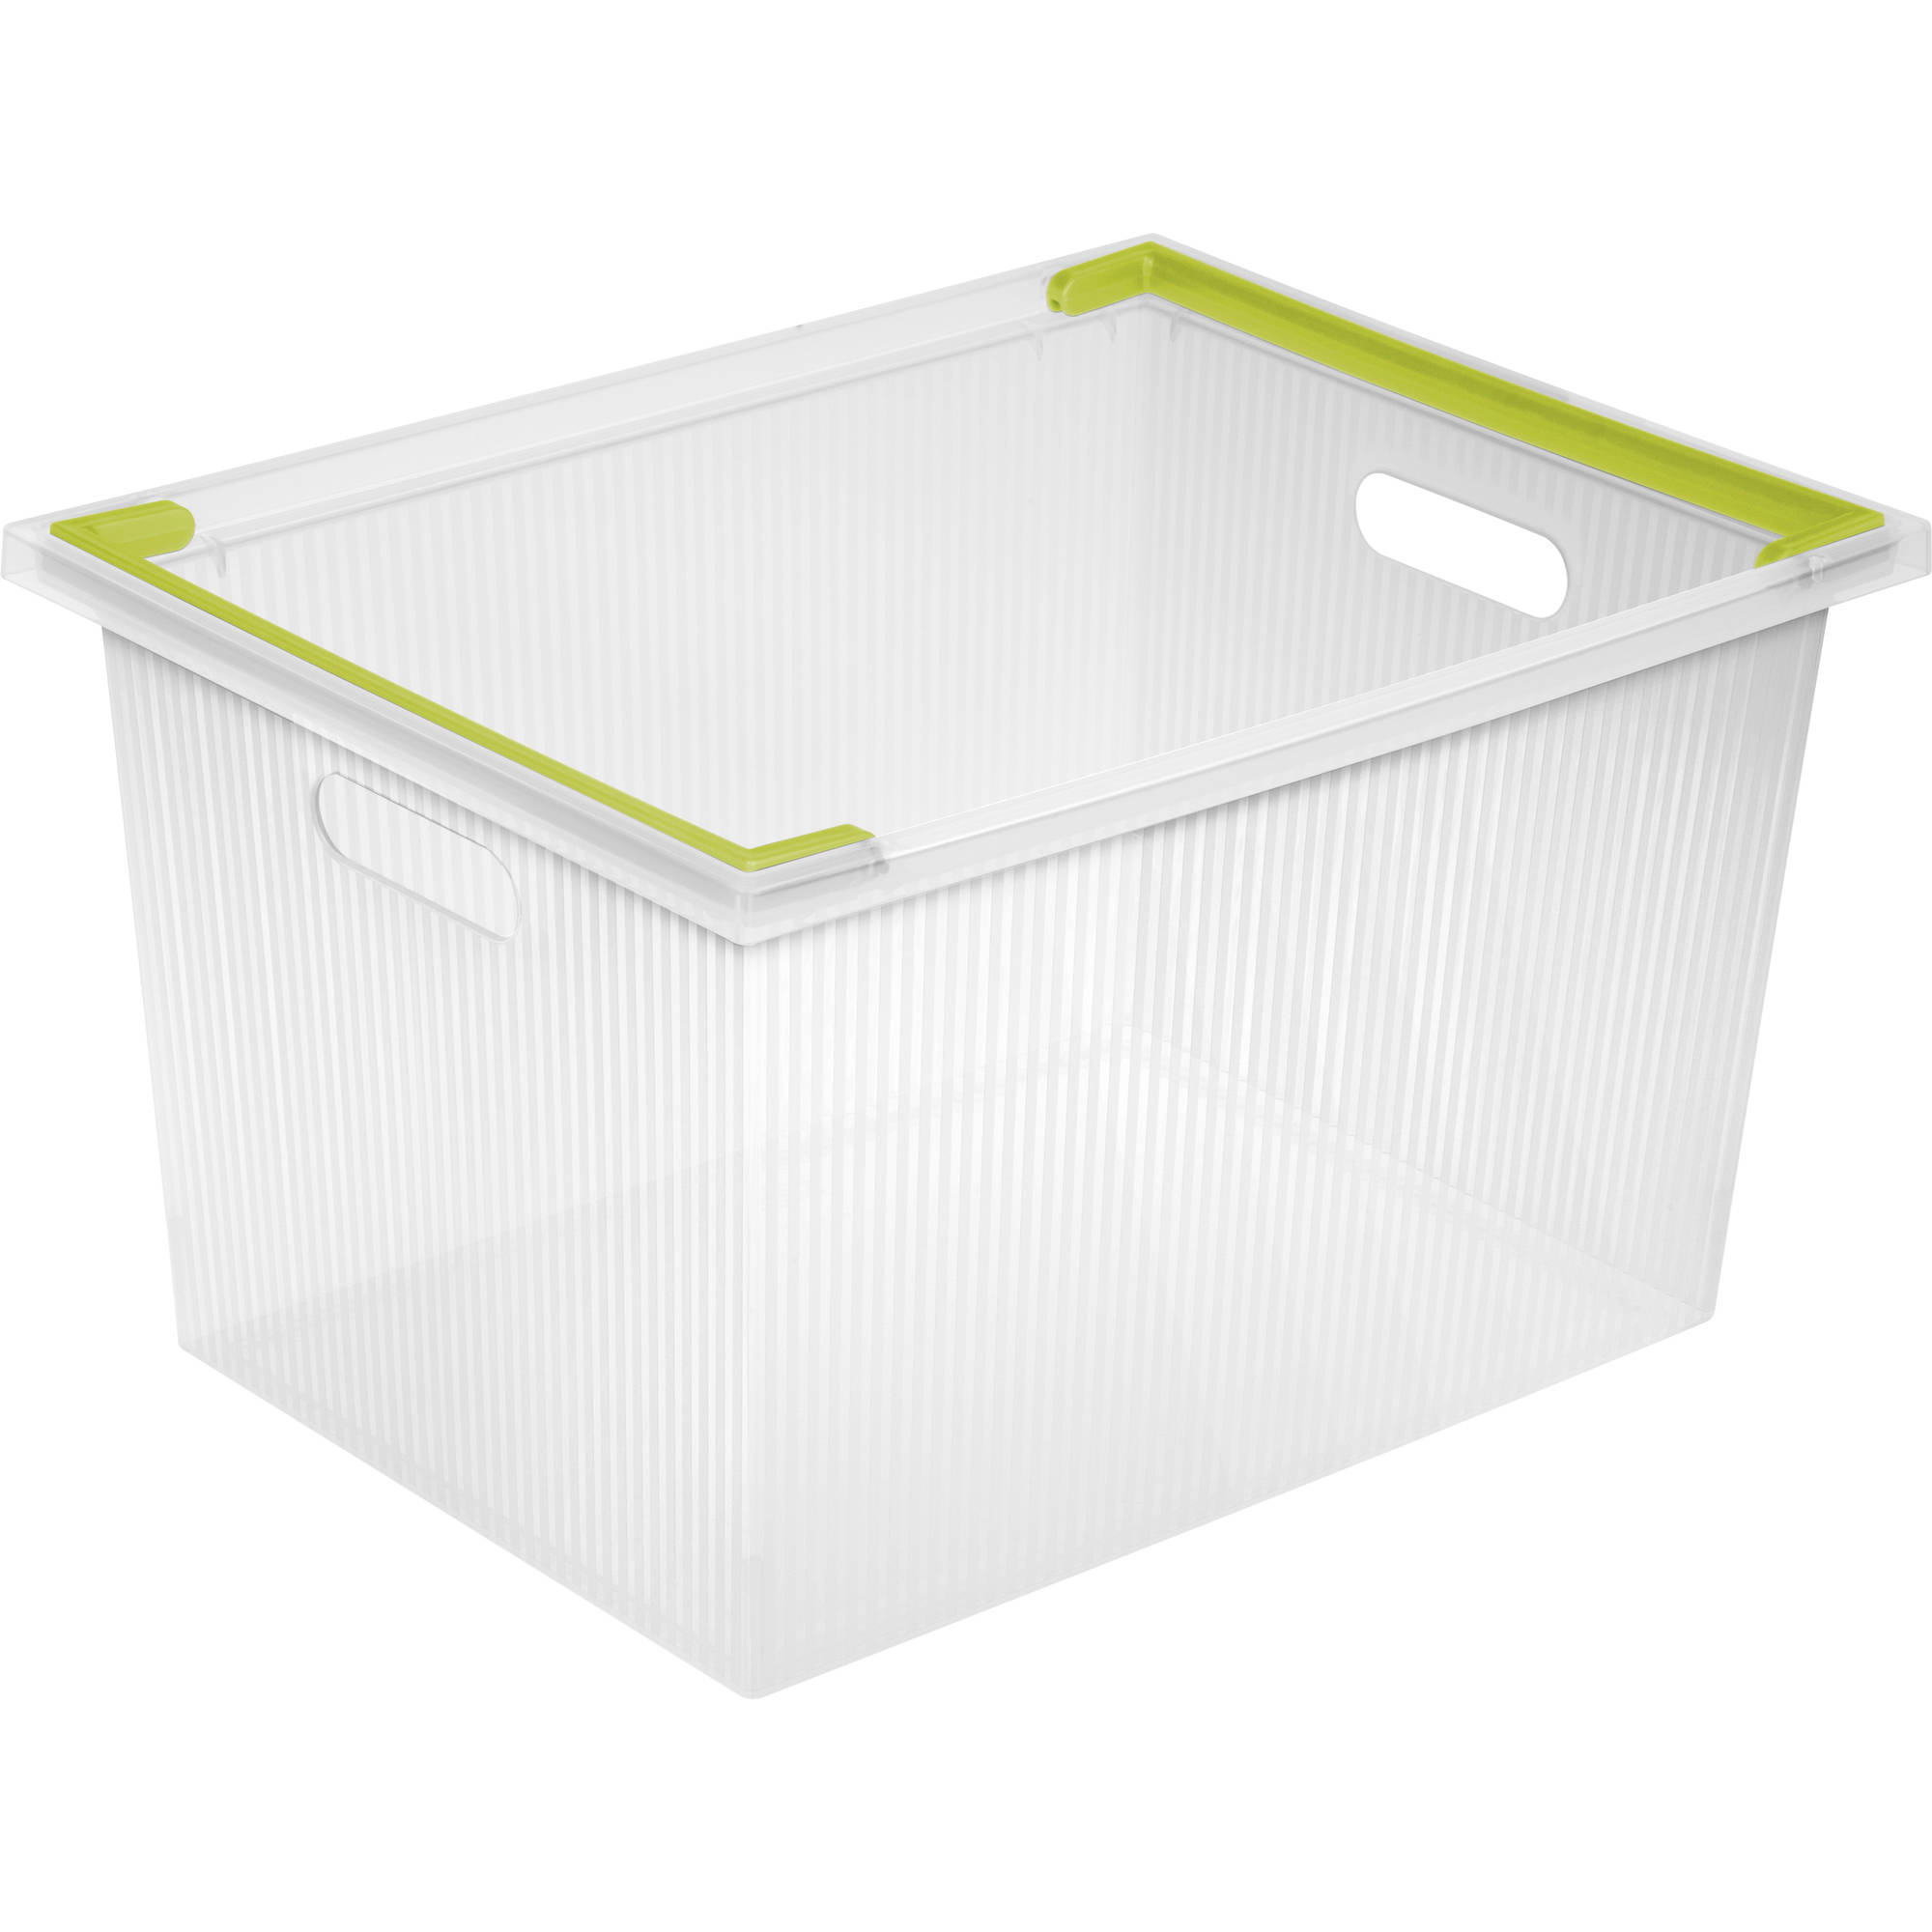 Sterilite Deep Stacking Bin- Bamboo Grass